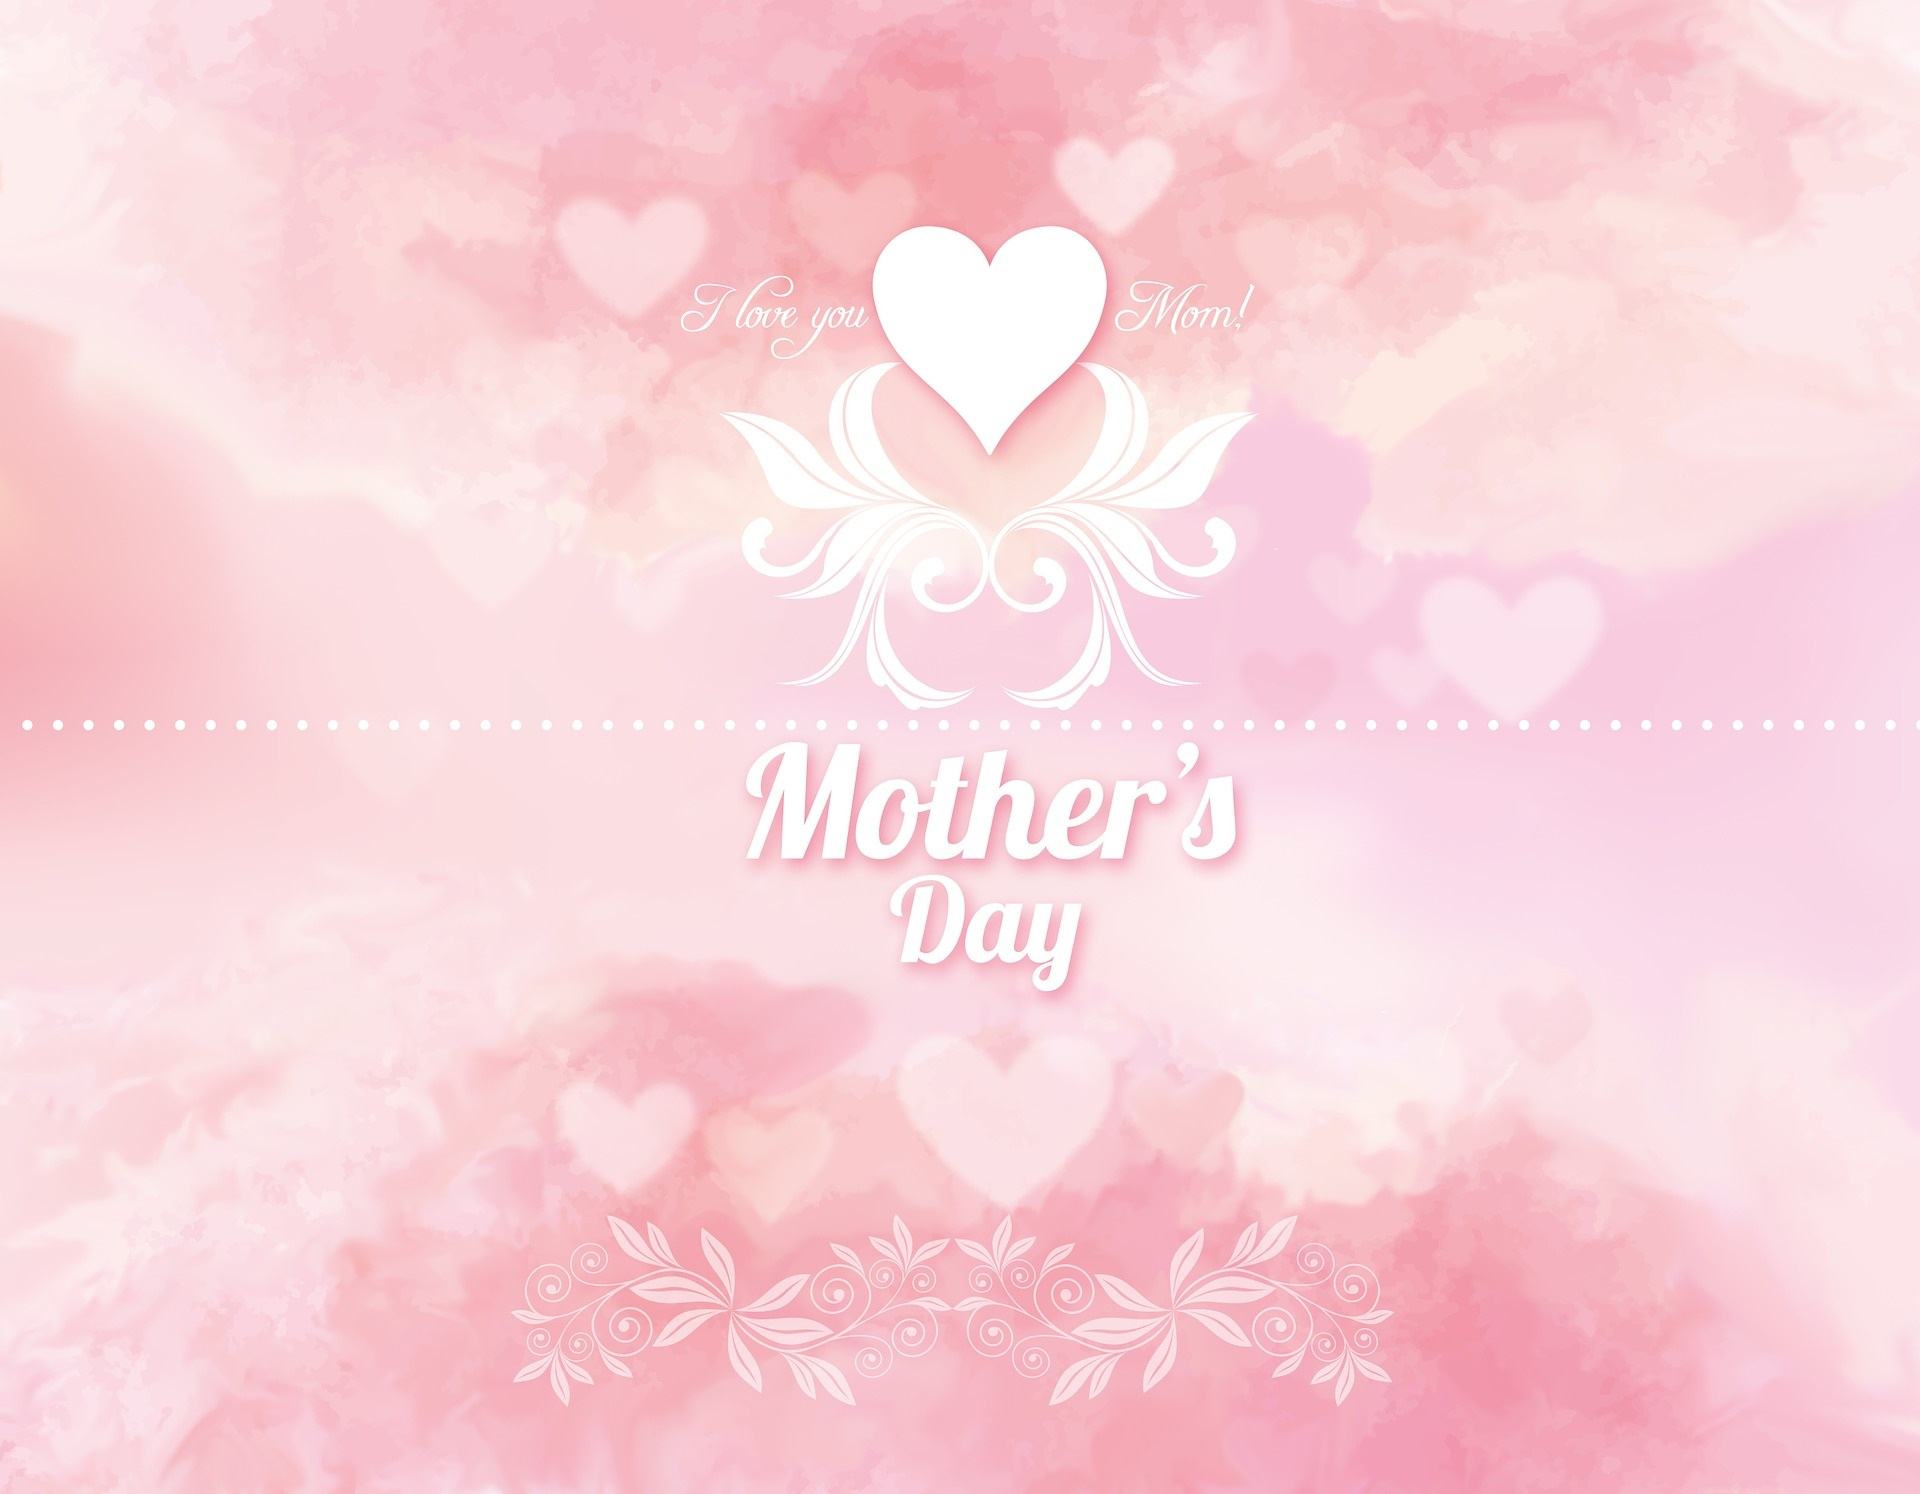 Give Mom The Gift Of Loving Health With Massage Therapy RMT Vaughan Ontario Woodbridge Canada